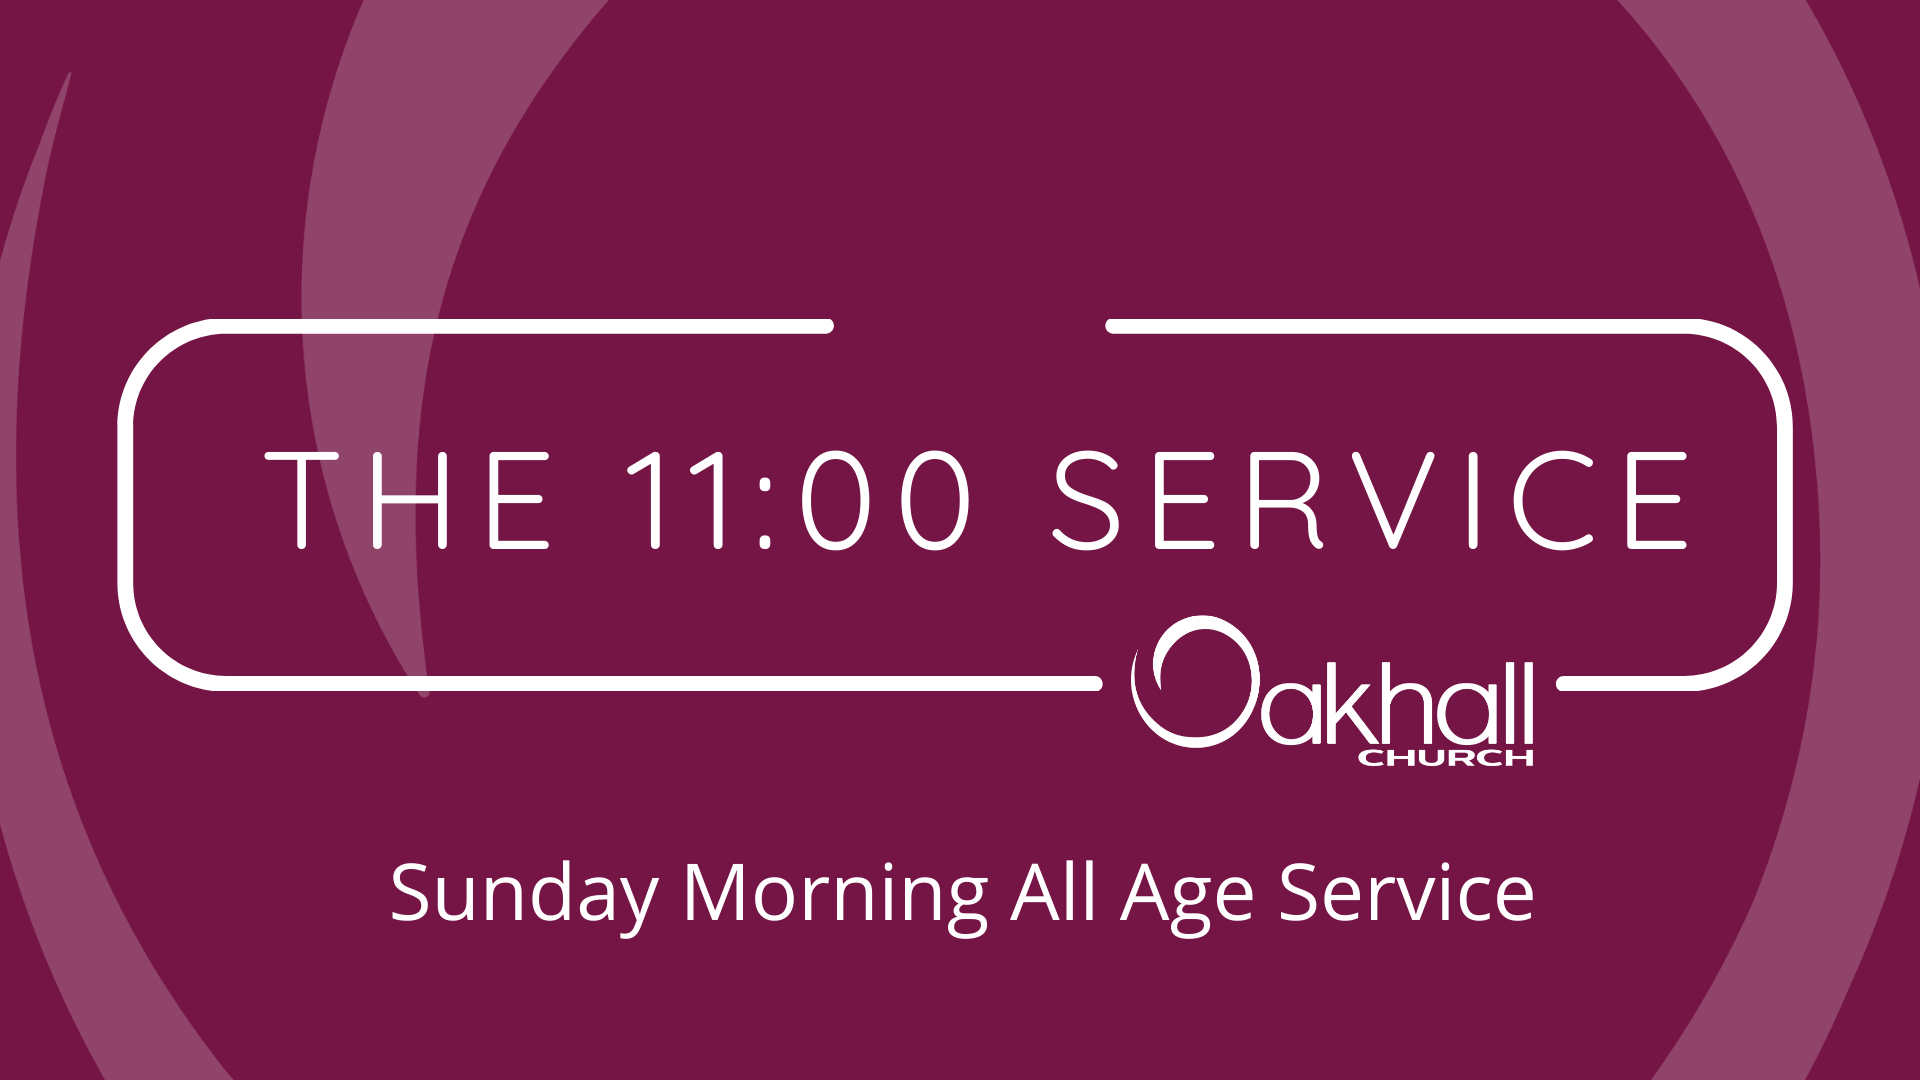 The 11:00 Service